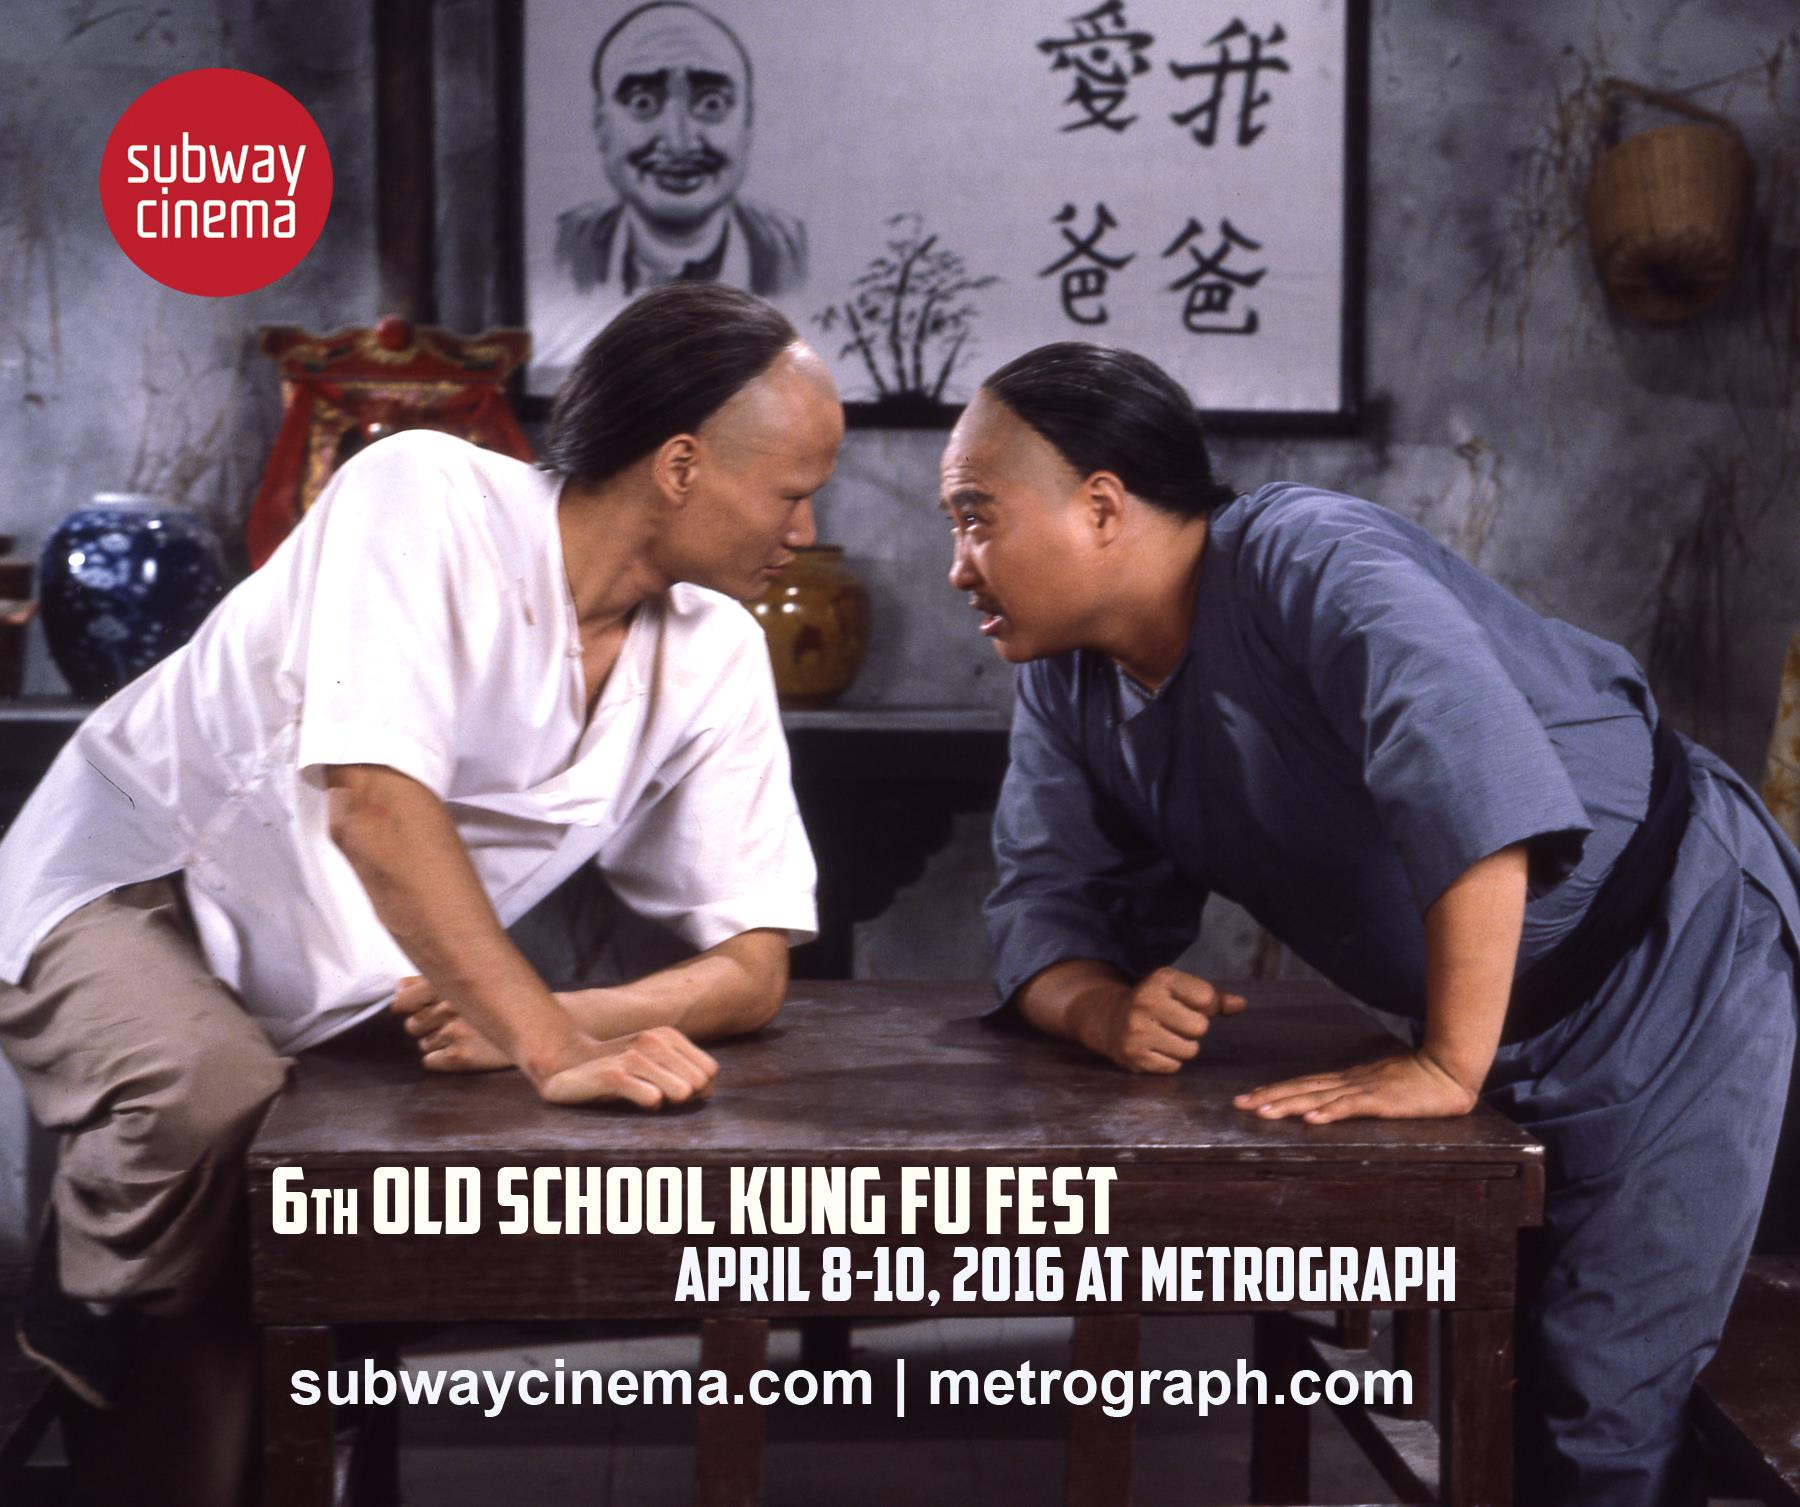 6th Old School Kung Fu Fest - Asia Trend